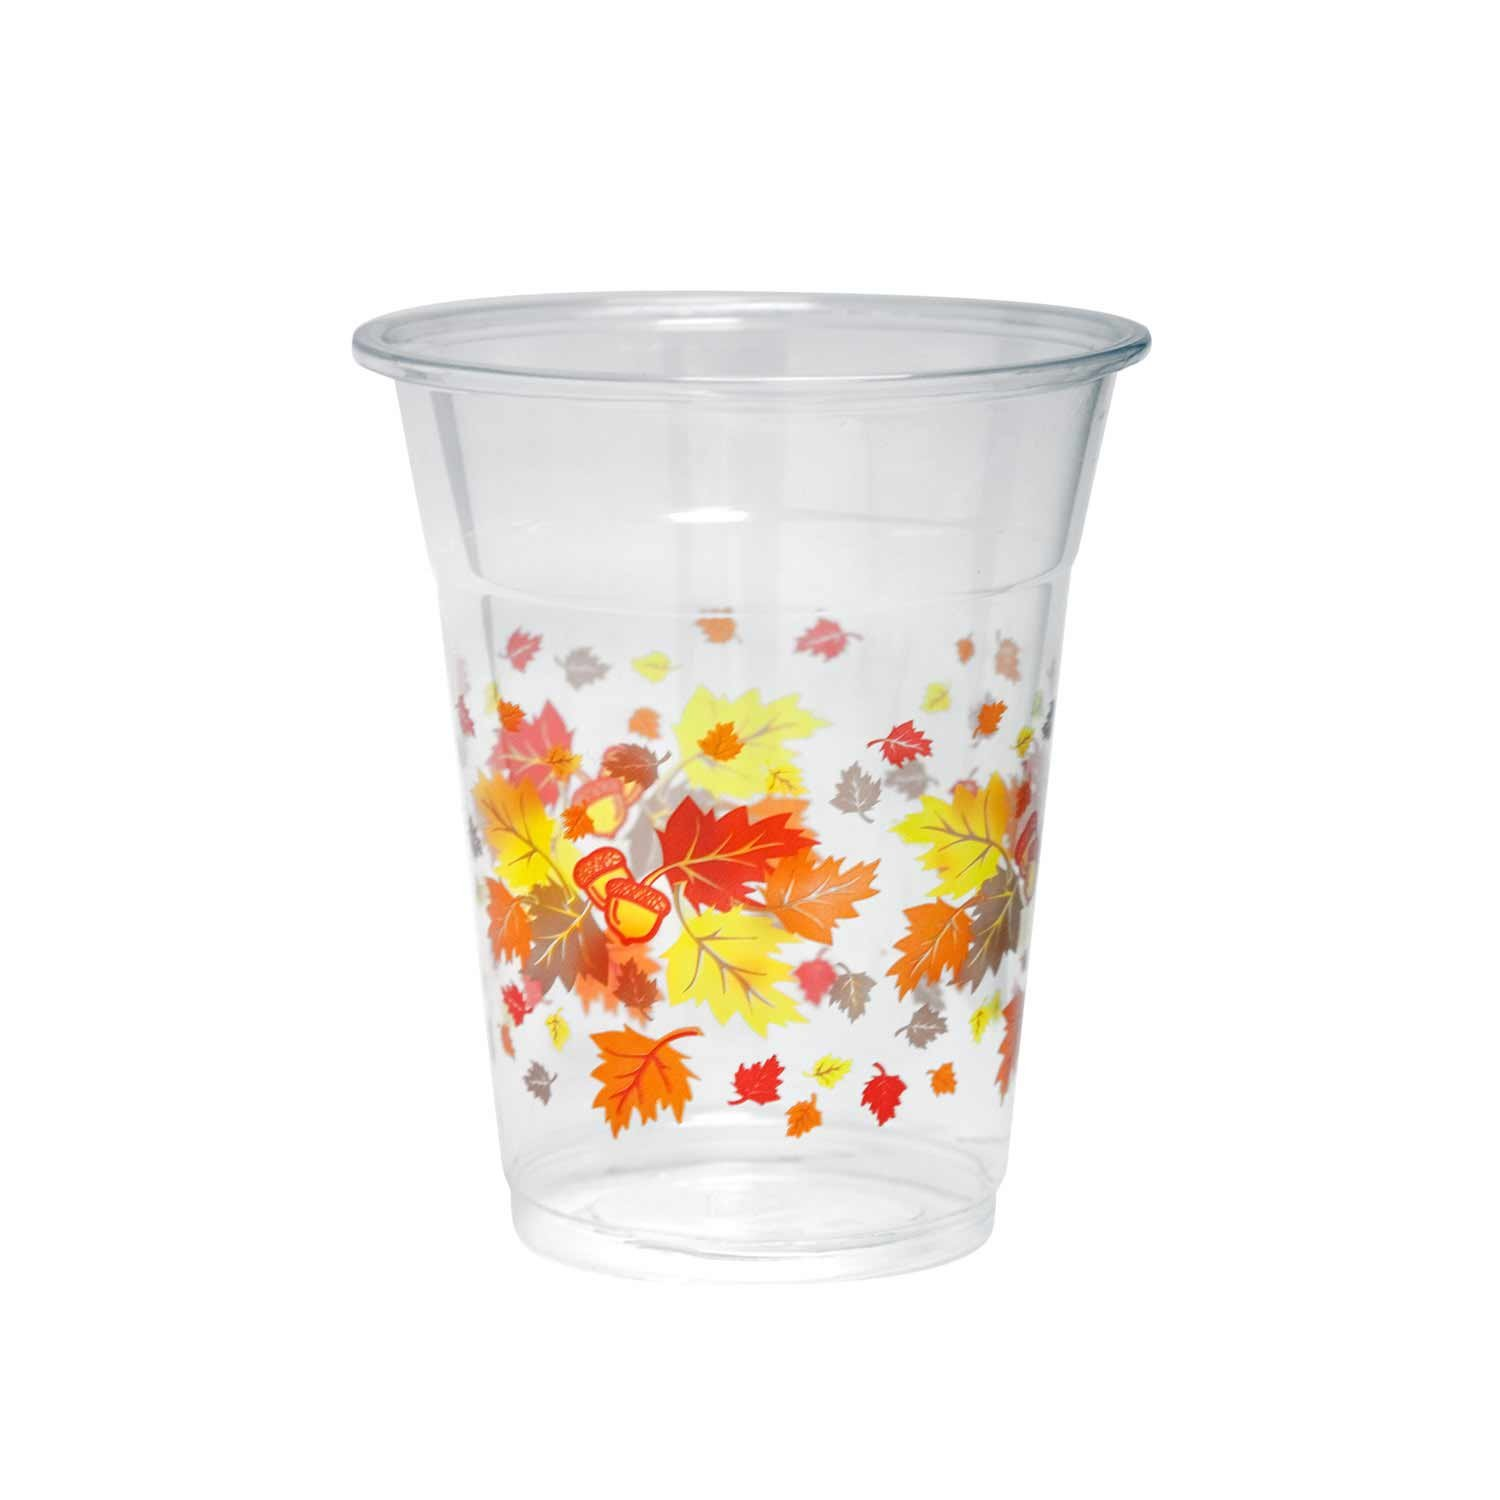 Party Essentials Soft Plastic Printed Party Cups, 12-Ounce, Autumn Leaves, 20-Count